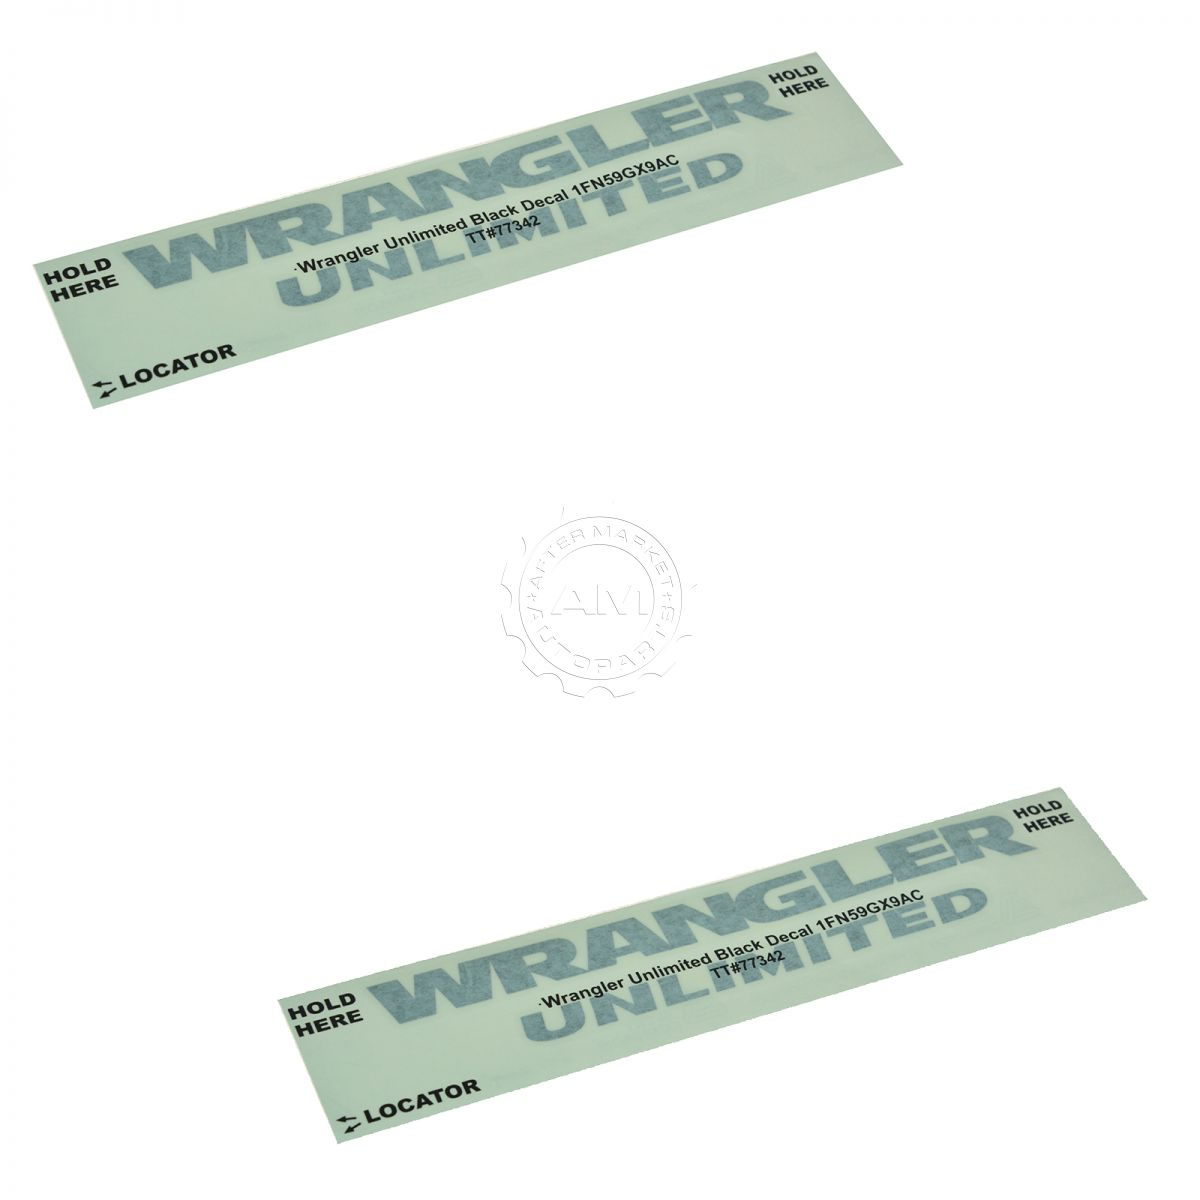 OEM 1FN59GX9AC Wrangler Unlimited Fender Decal Gloss Black Pair Set for Jeep New